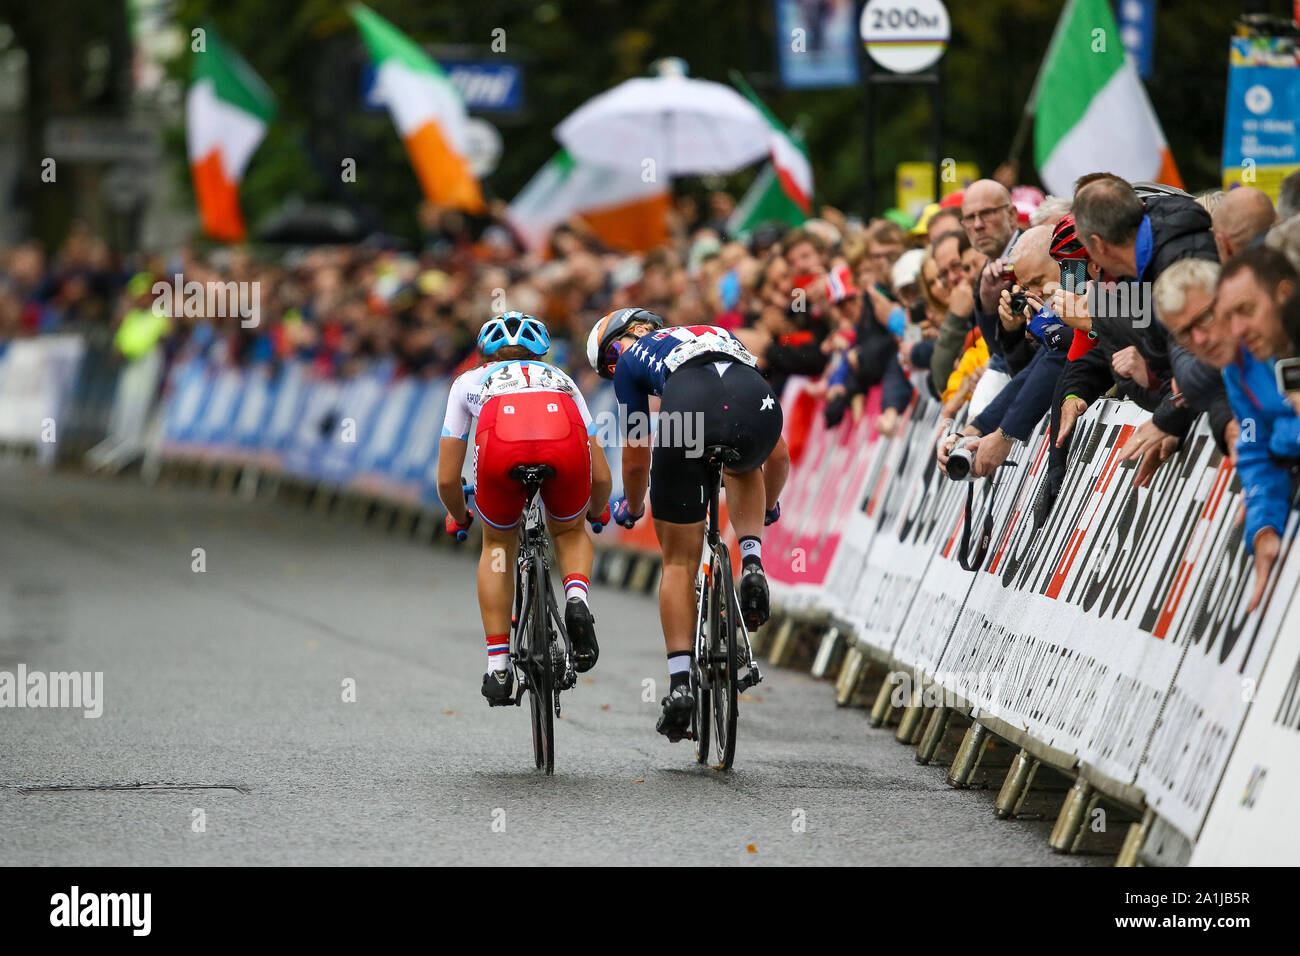 Harrogate, UK. 27th September 2019. Megan Jastrab of the USA looks back to the chasing peloton before taking Gold at the 2019 UCI Road World Championships Womens Junior Road Race. September 27, 2019 Credit Dan-Cooke/Alamy Live News Stock Photo